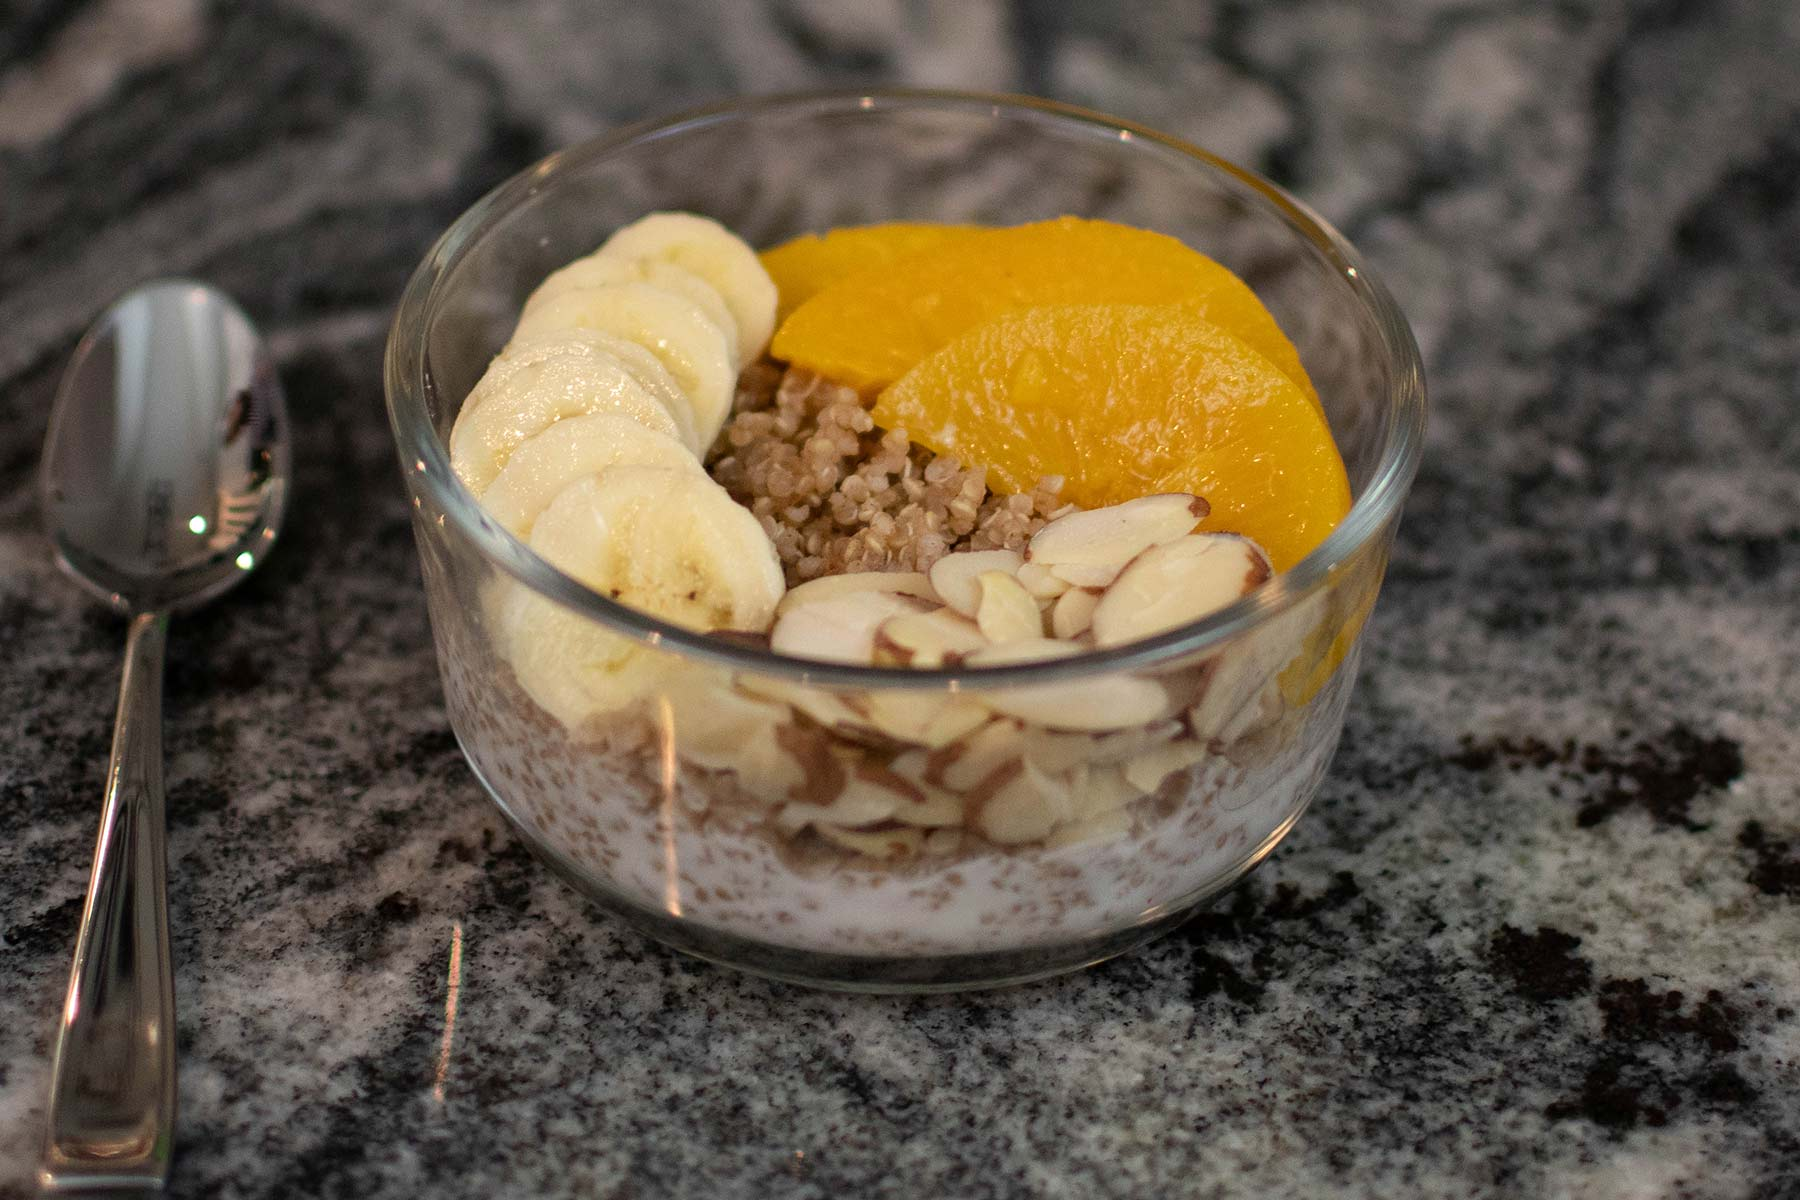 Quinoa breakfast bowl with bananas, almonds, oranges and granola